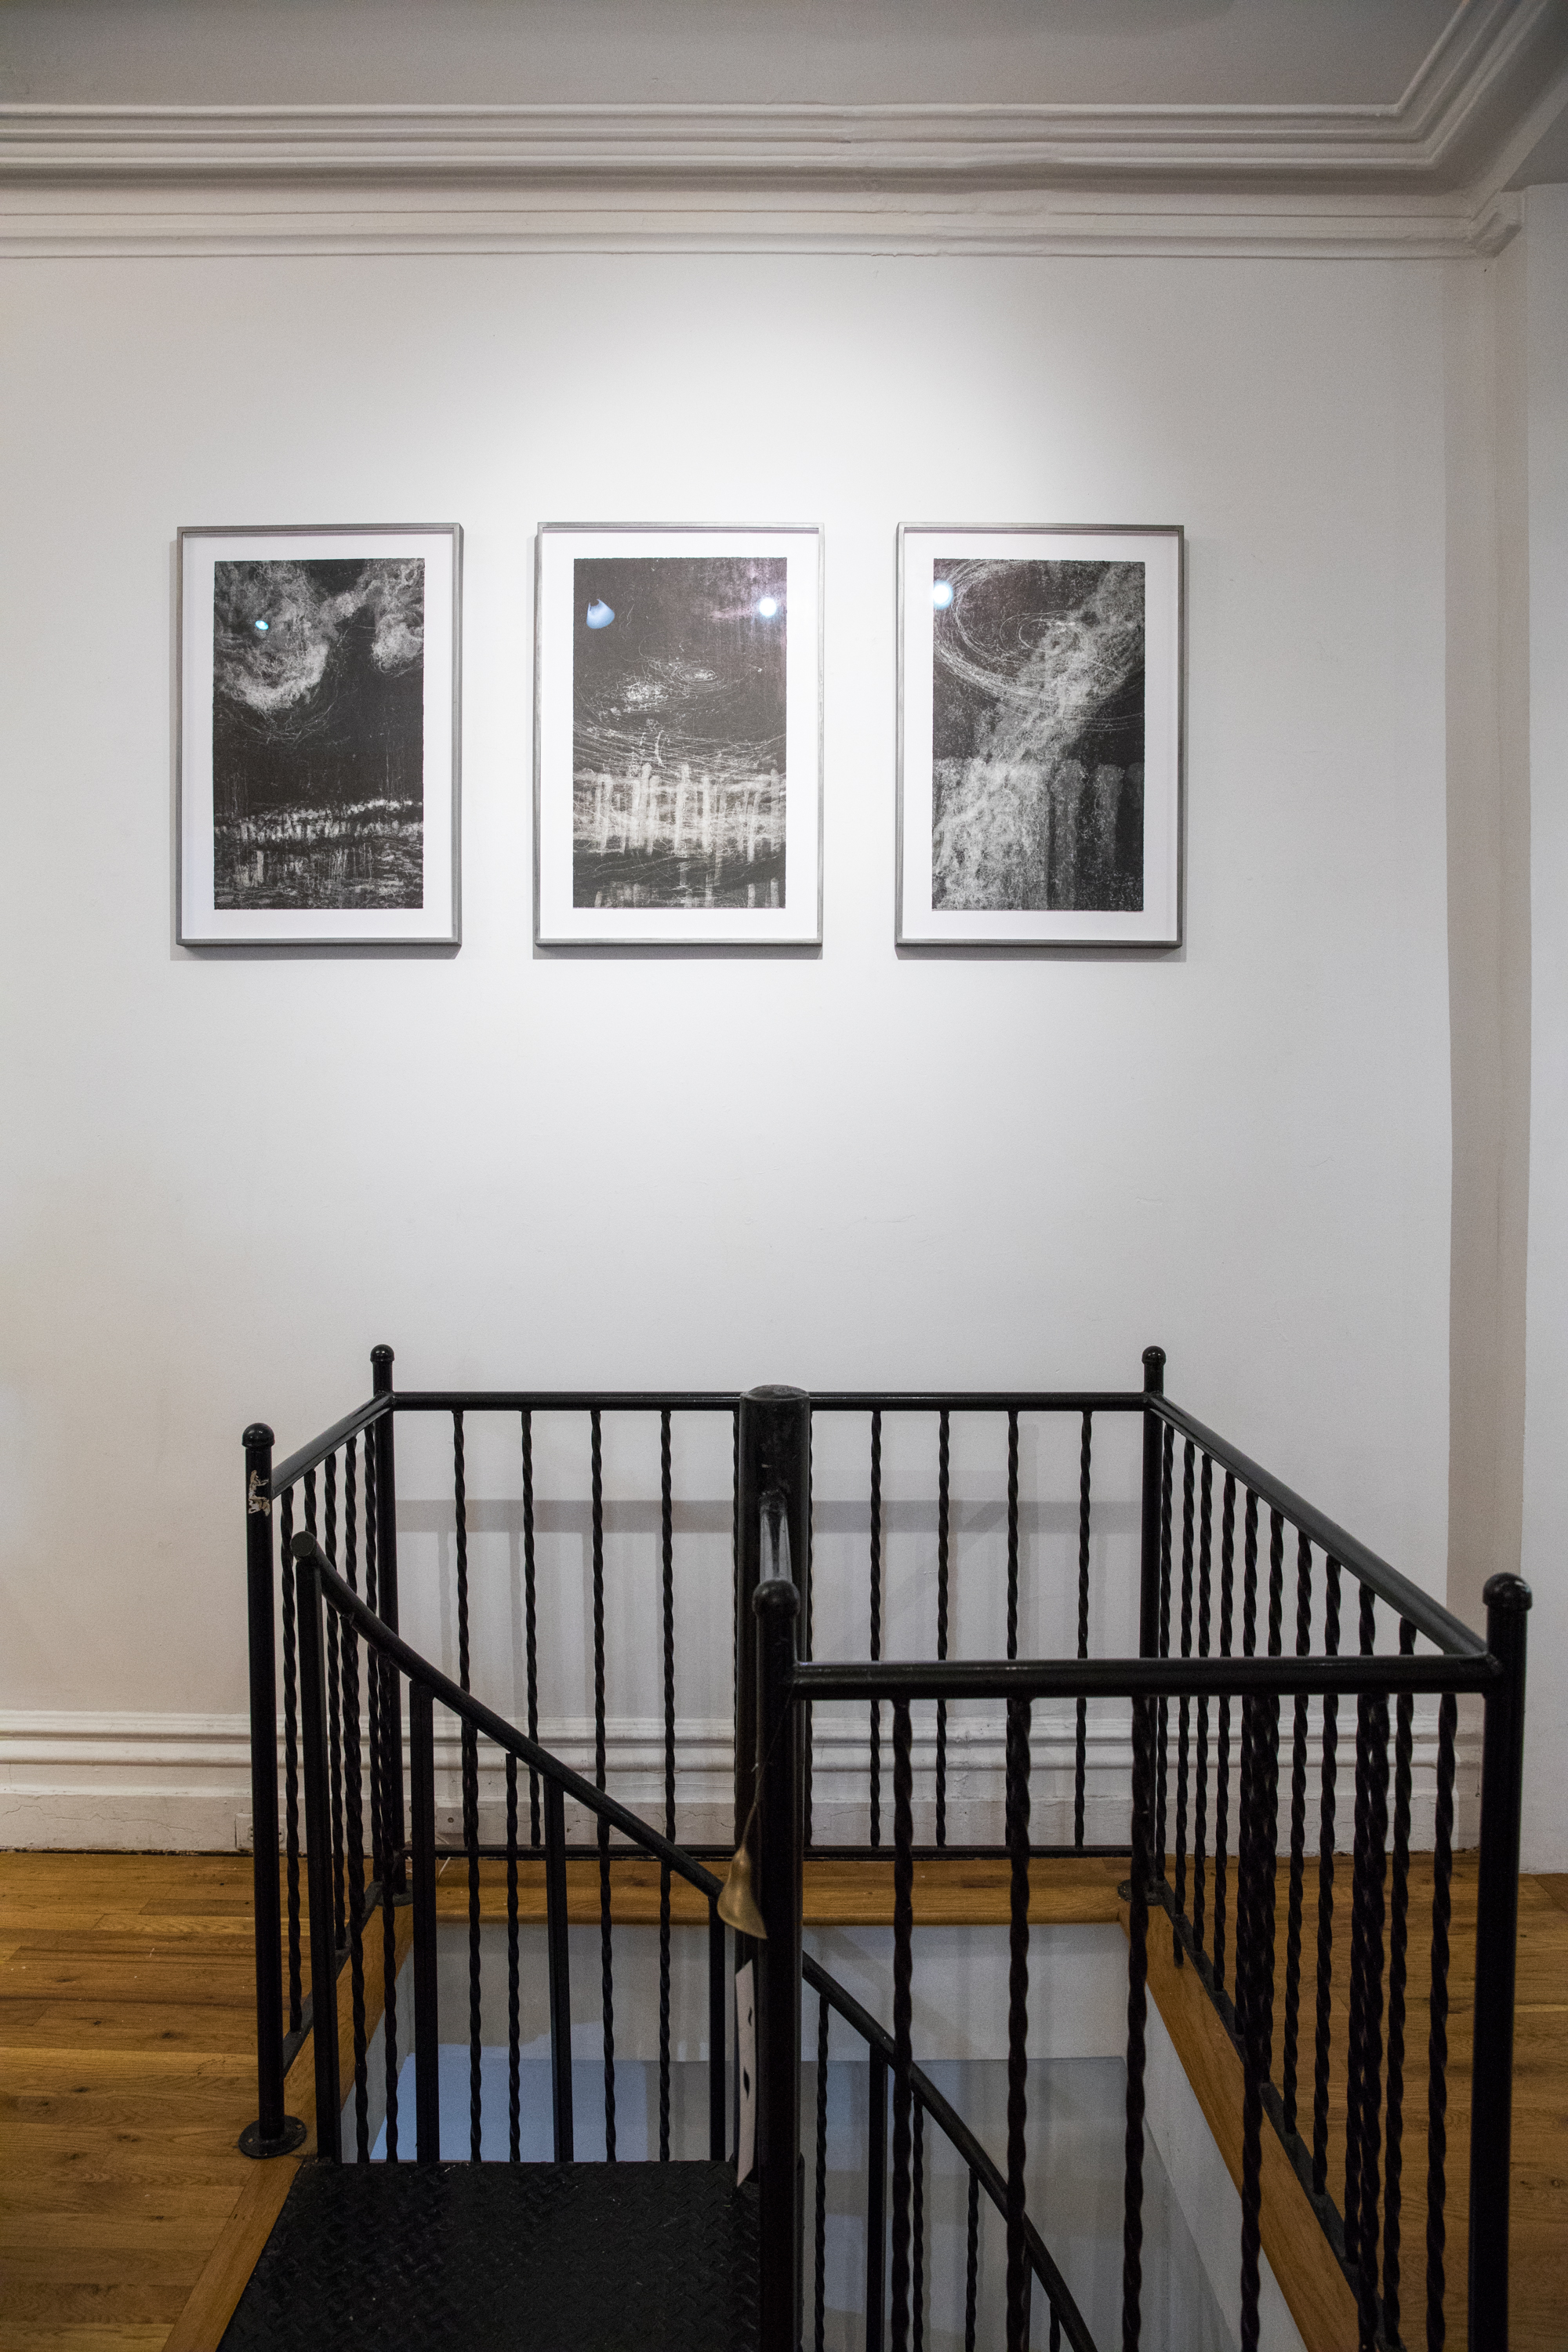 Hilda Shen,  Illumined Triptych , 2010. Set of 3 unique monotypes, 15 x 25 inches each, not including frame, ©Hilda Shen, courtesy of Fou Gallery